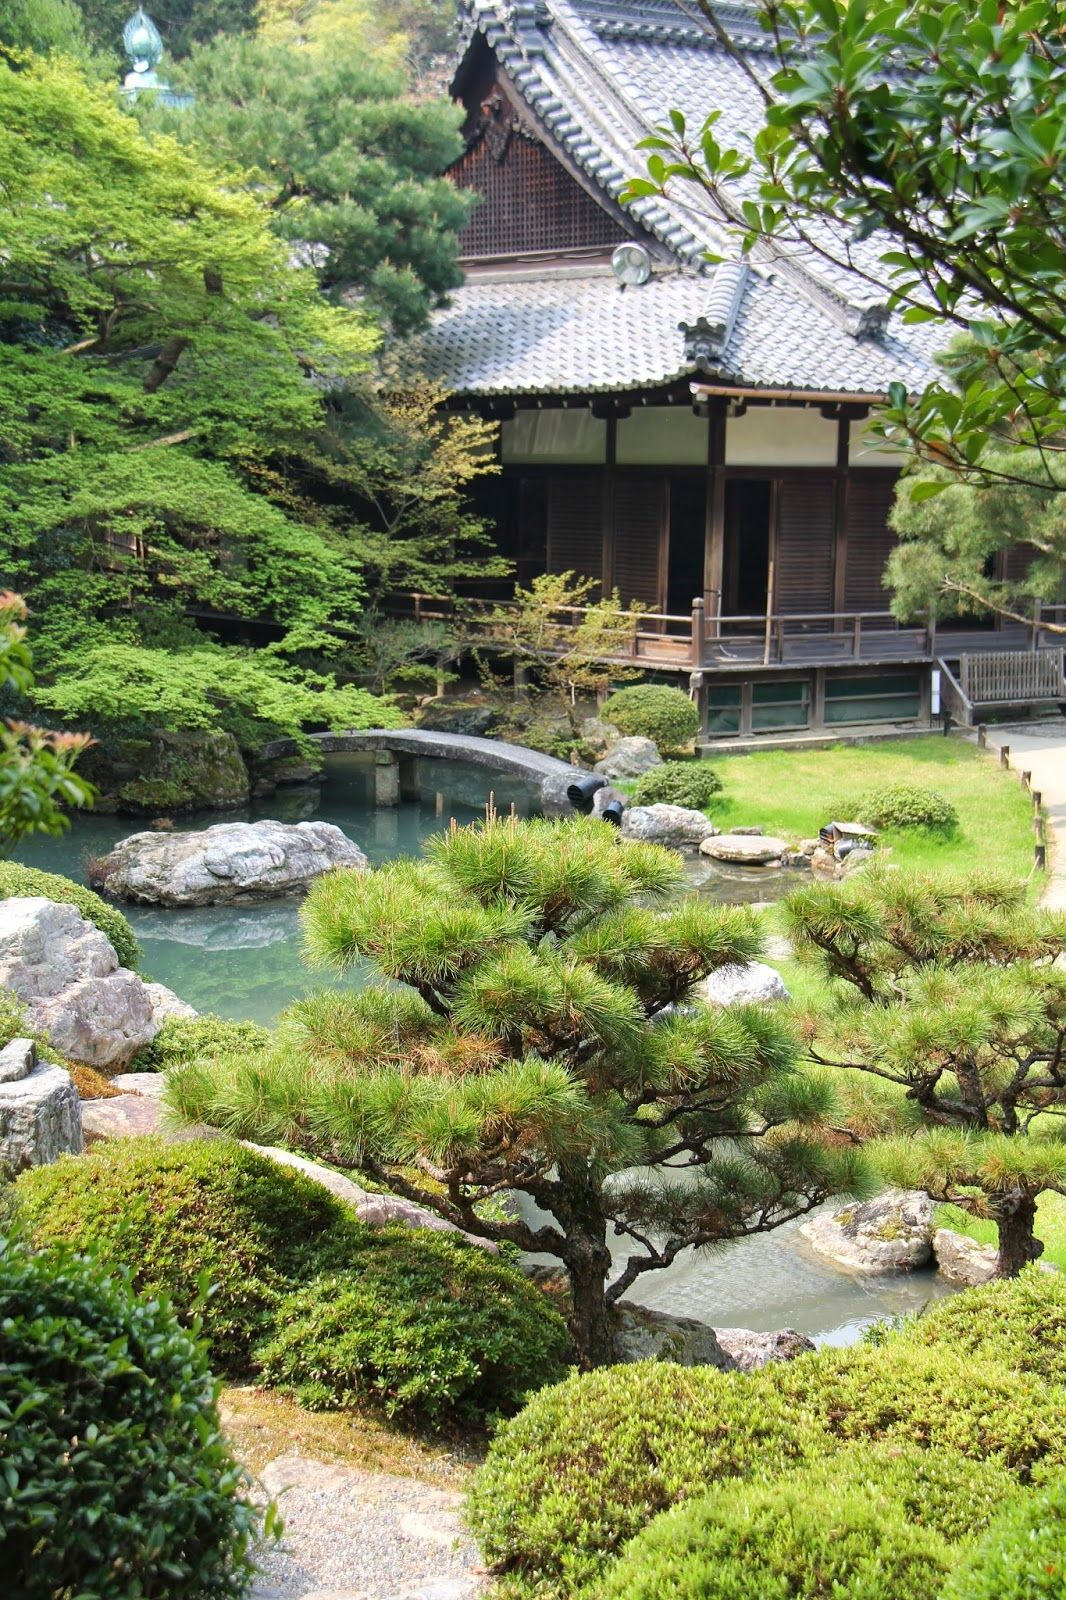 Buddhist Ceremony Traditional Japanese Garden: Shoren-in, Kyoto (Southern Higashiyama) Magical And